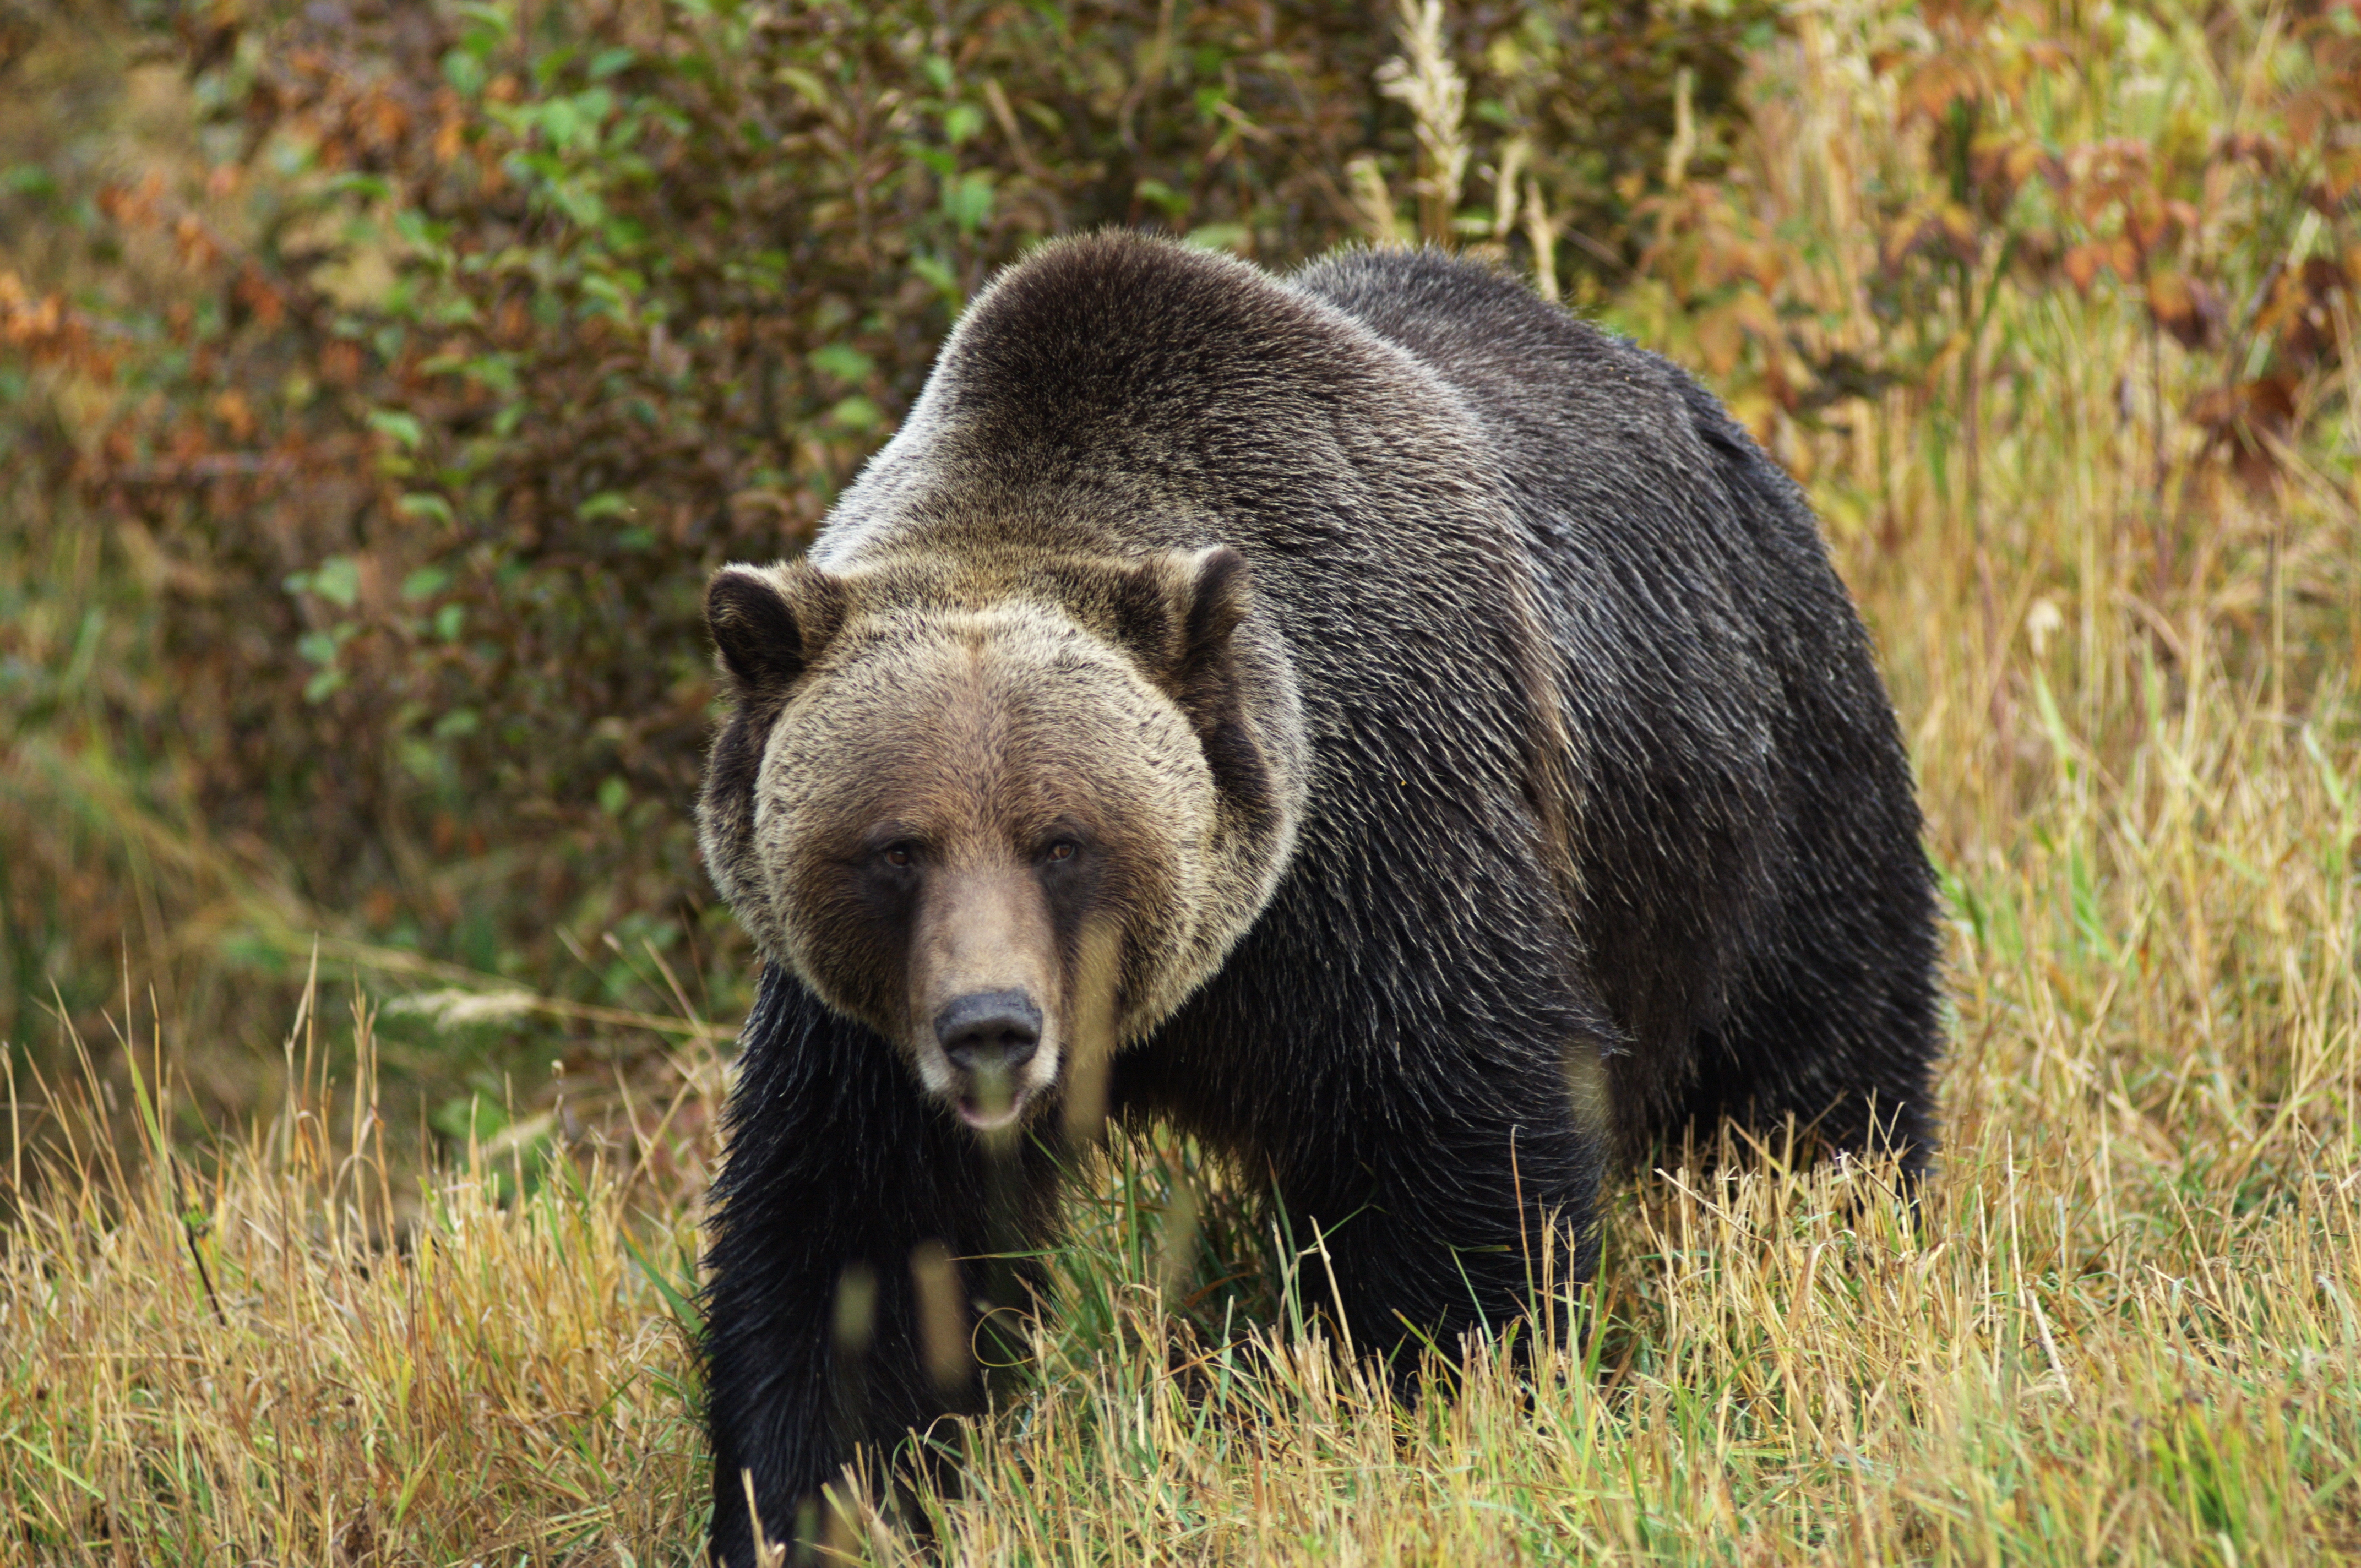 An Expert's Guide on How to Stay Alive in Grizzly Bear